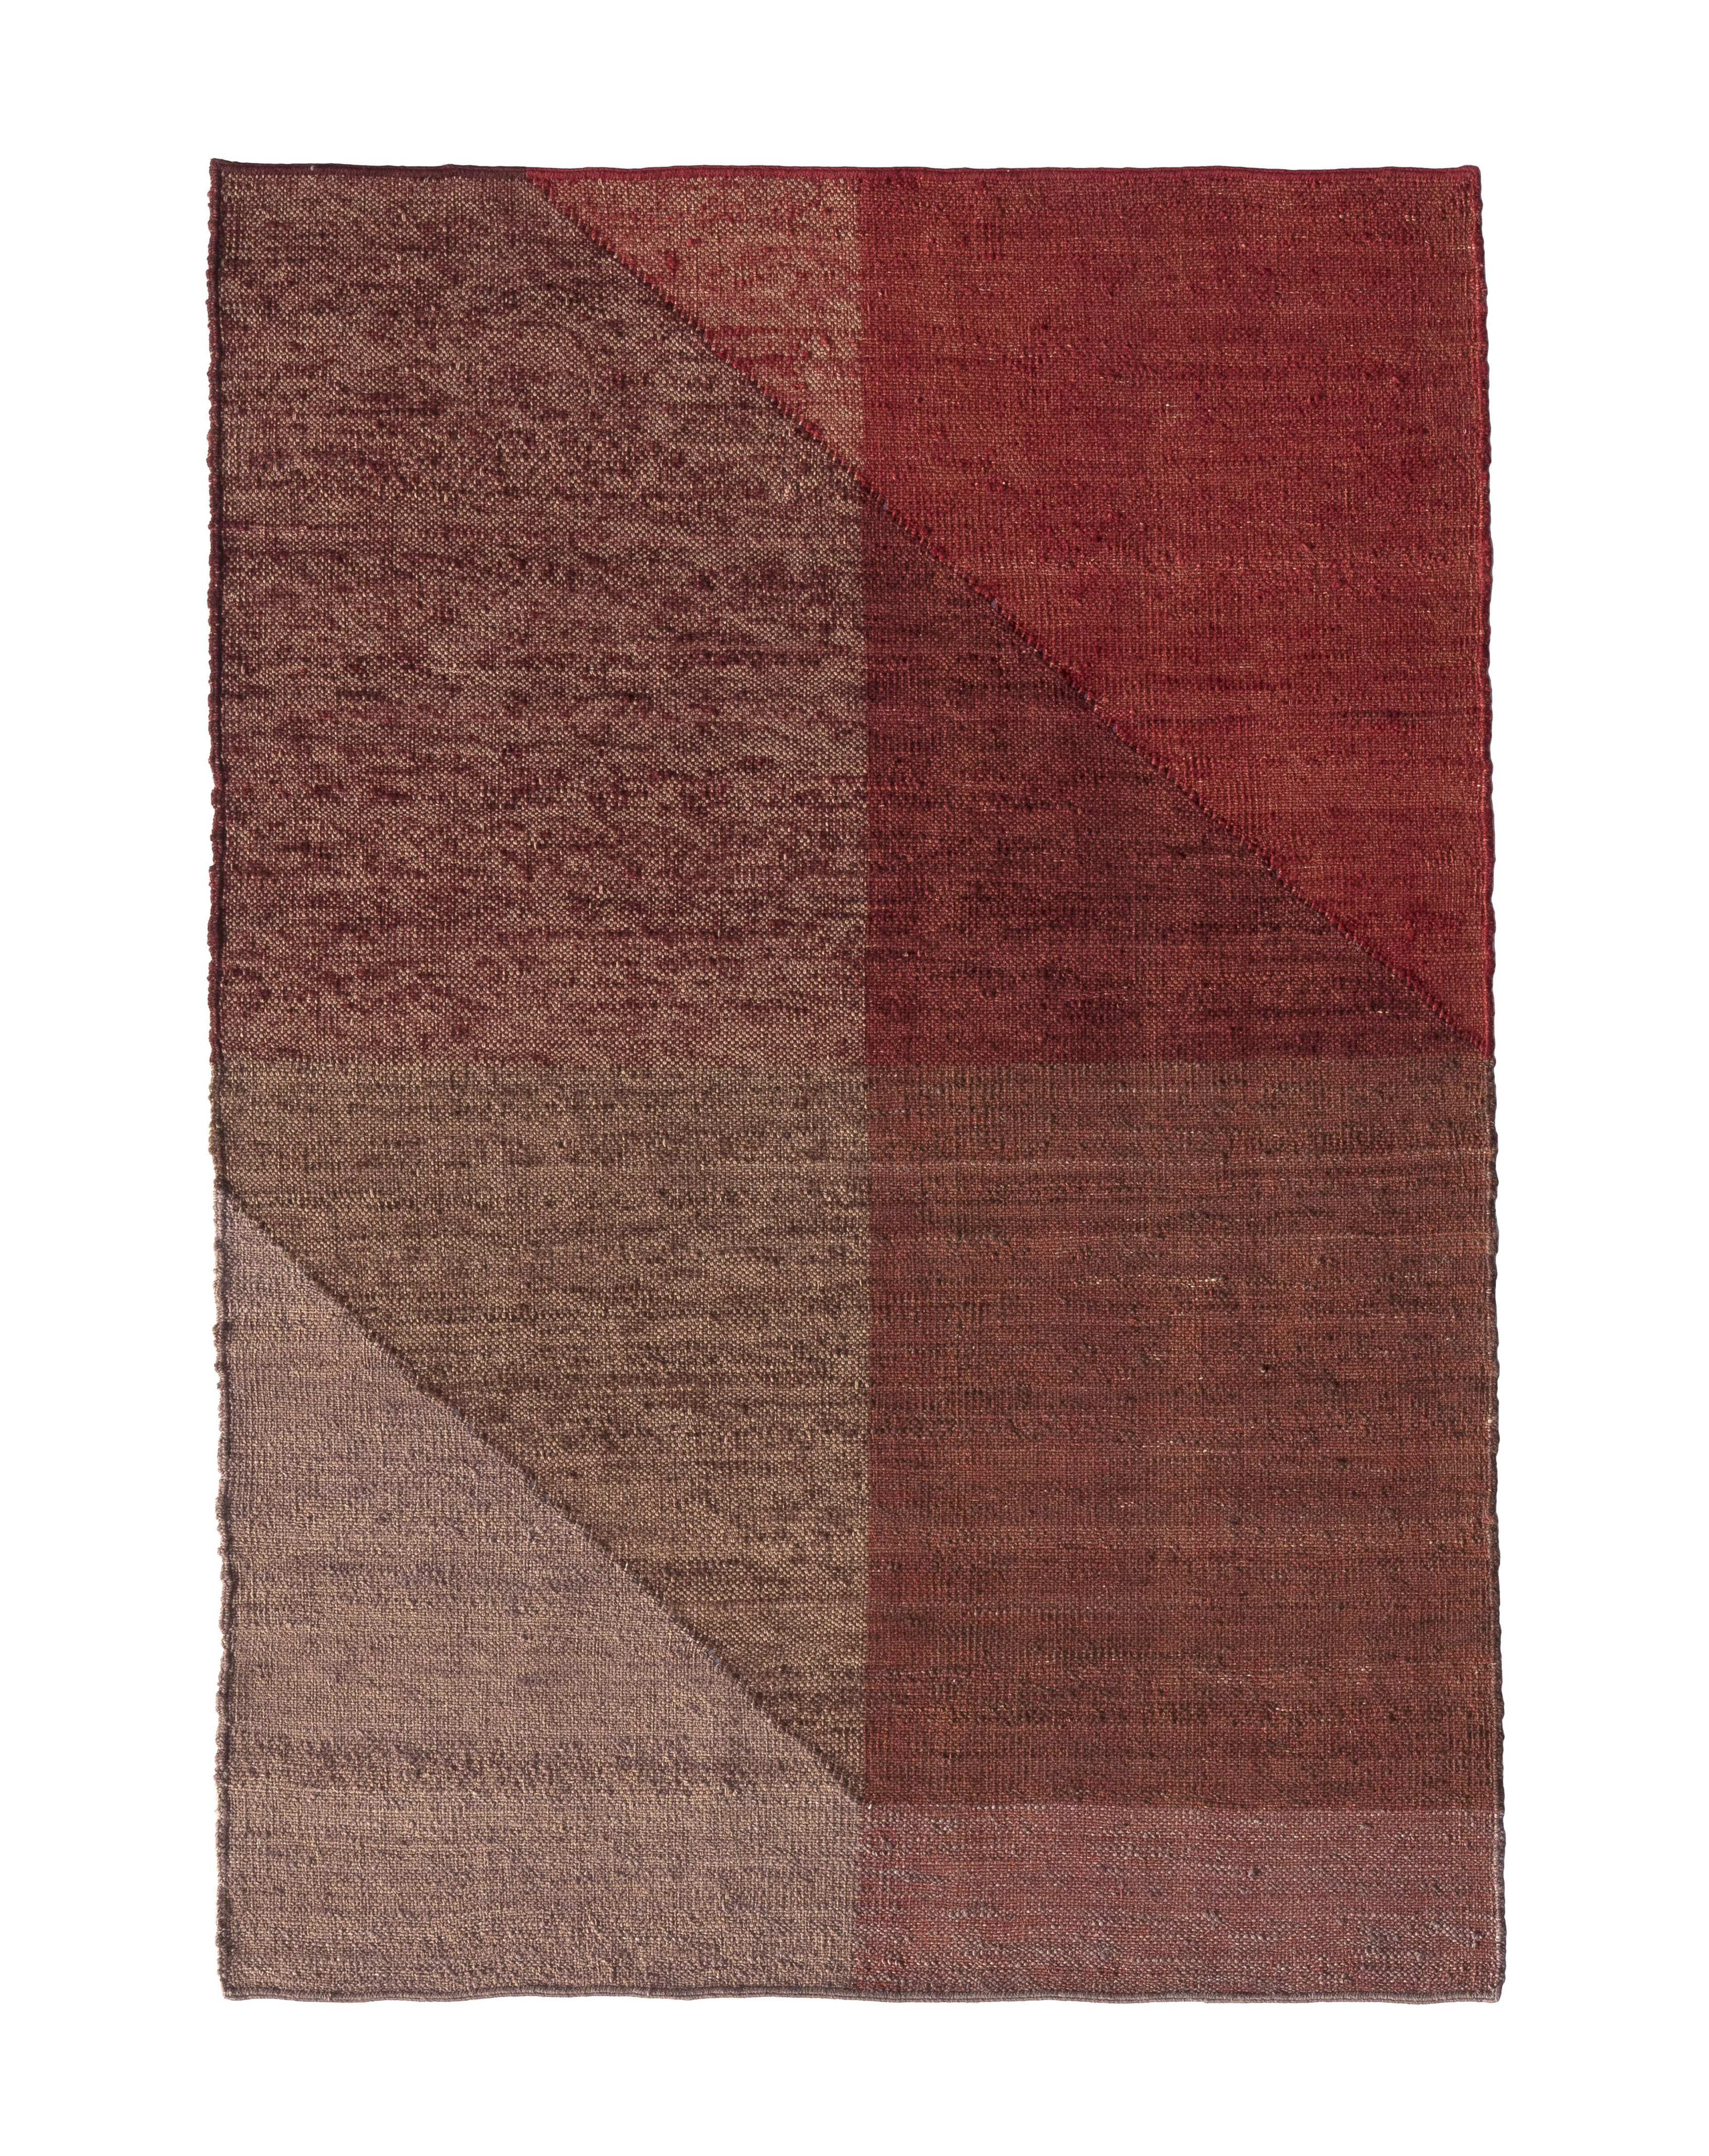 Decoration - Rugs - Capas 1 Rug - / 170 x 240 cm by Nanimarquina - Red - Wool